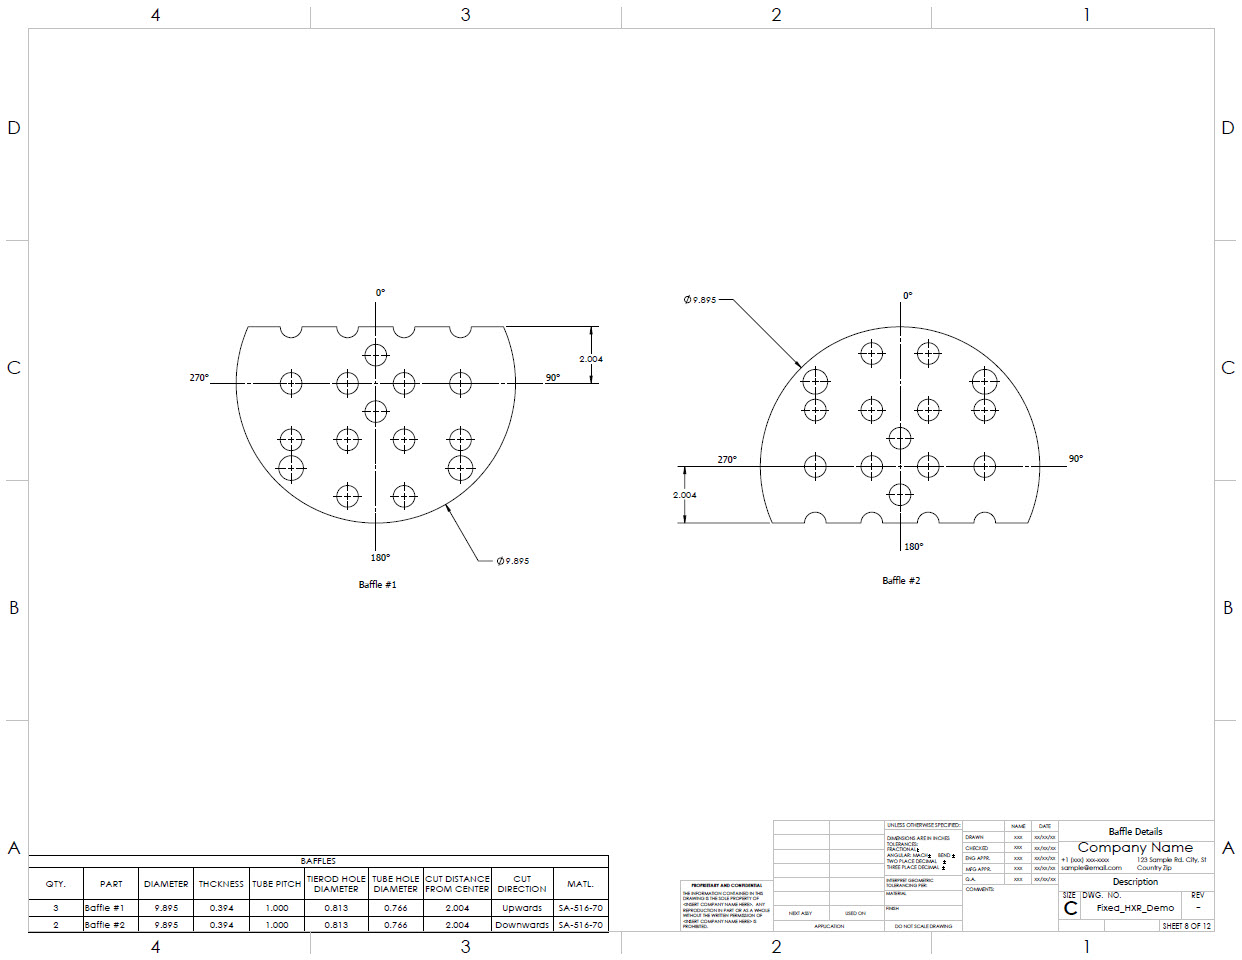 Baffle detail drawing generated by the Codeware Interface.